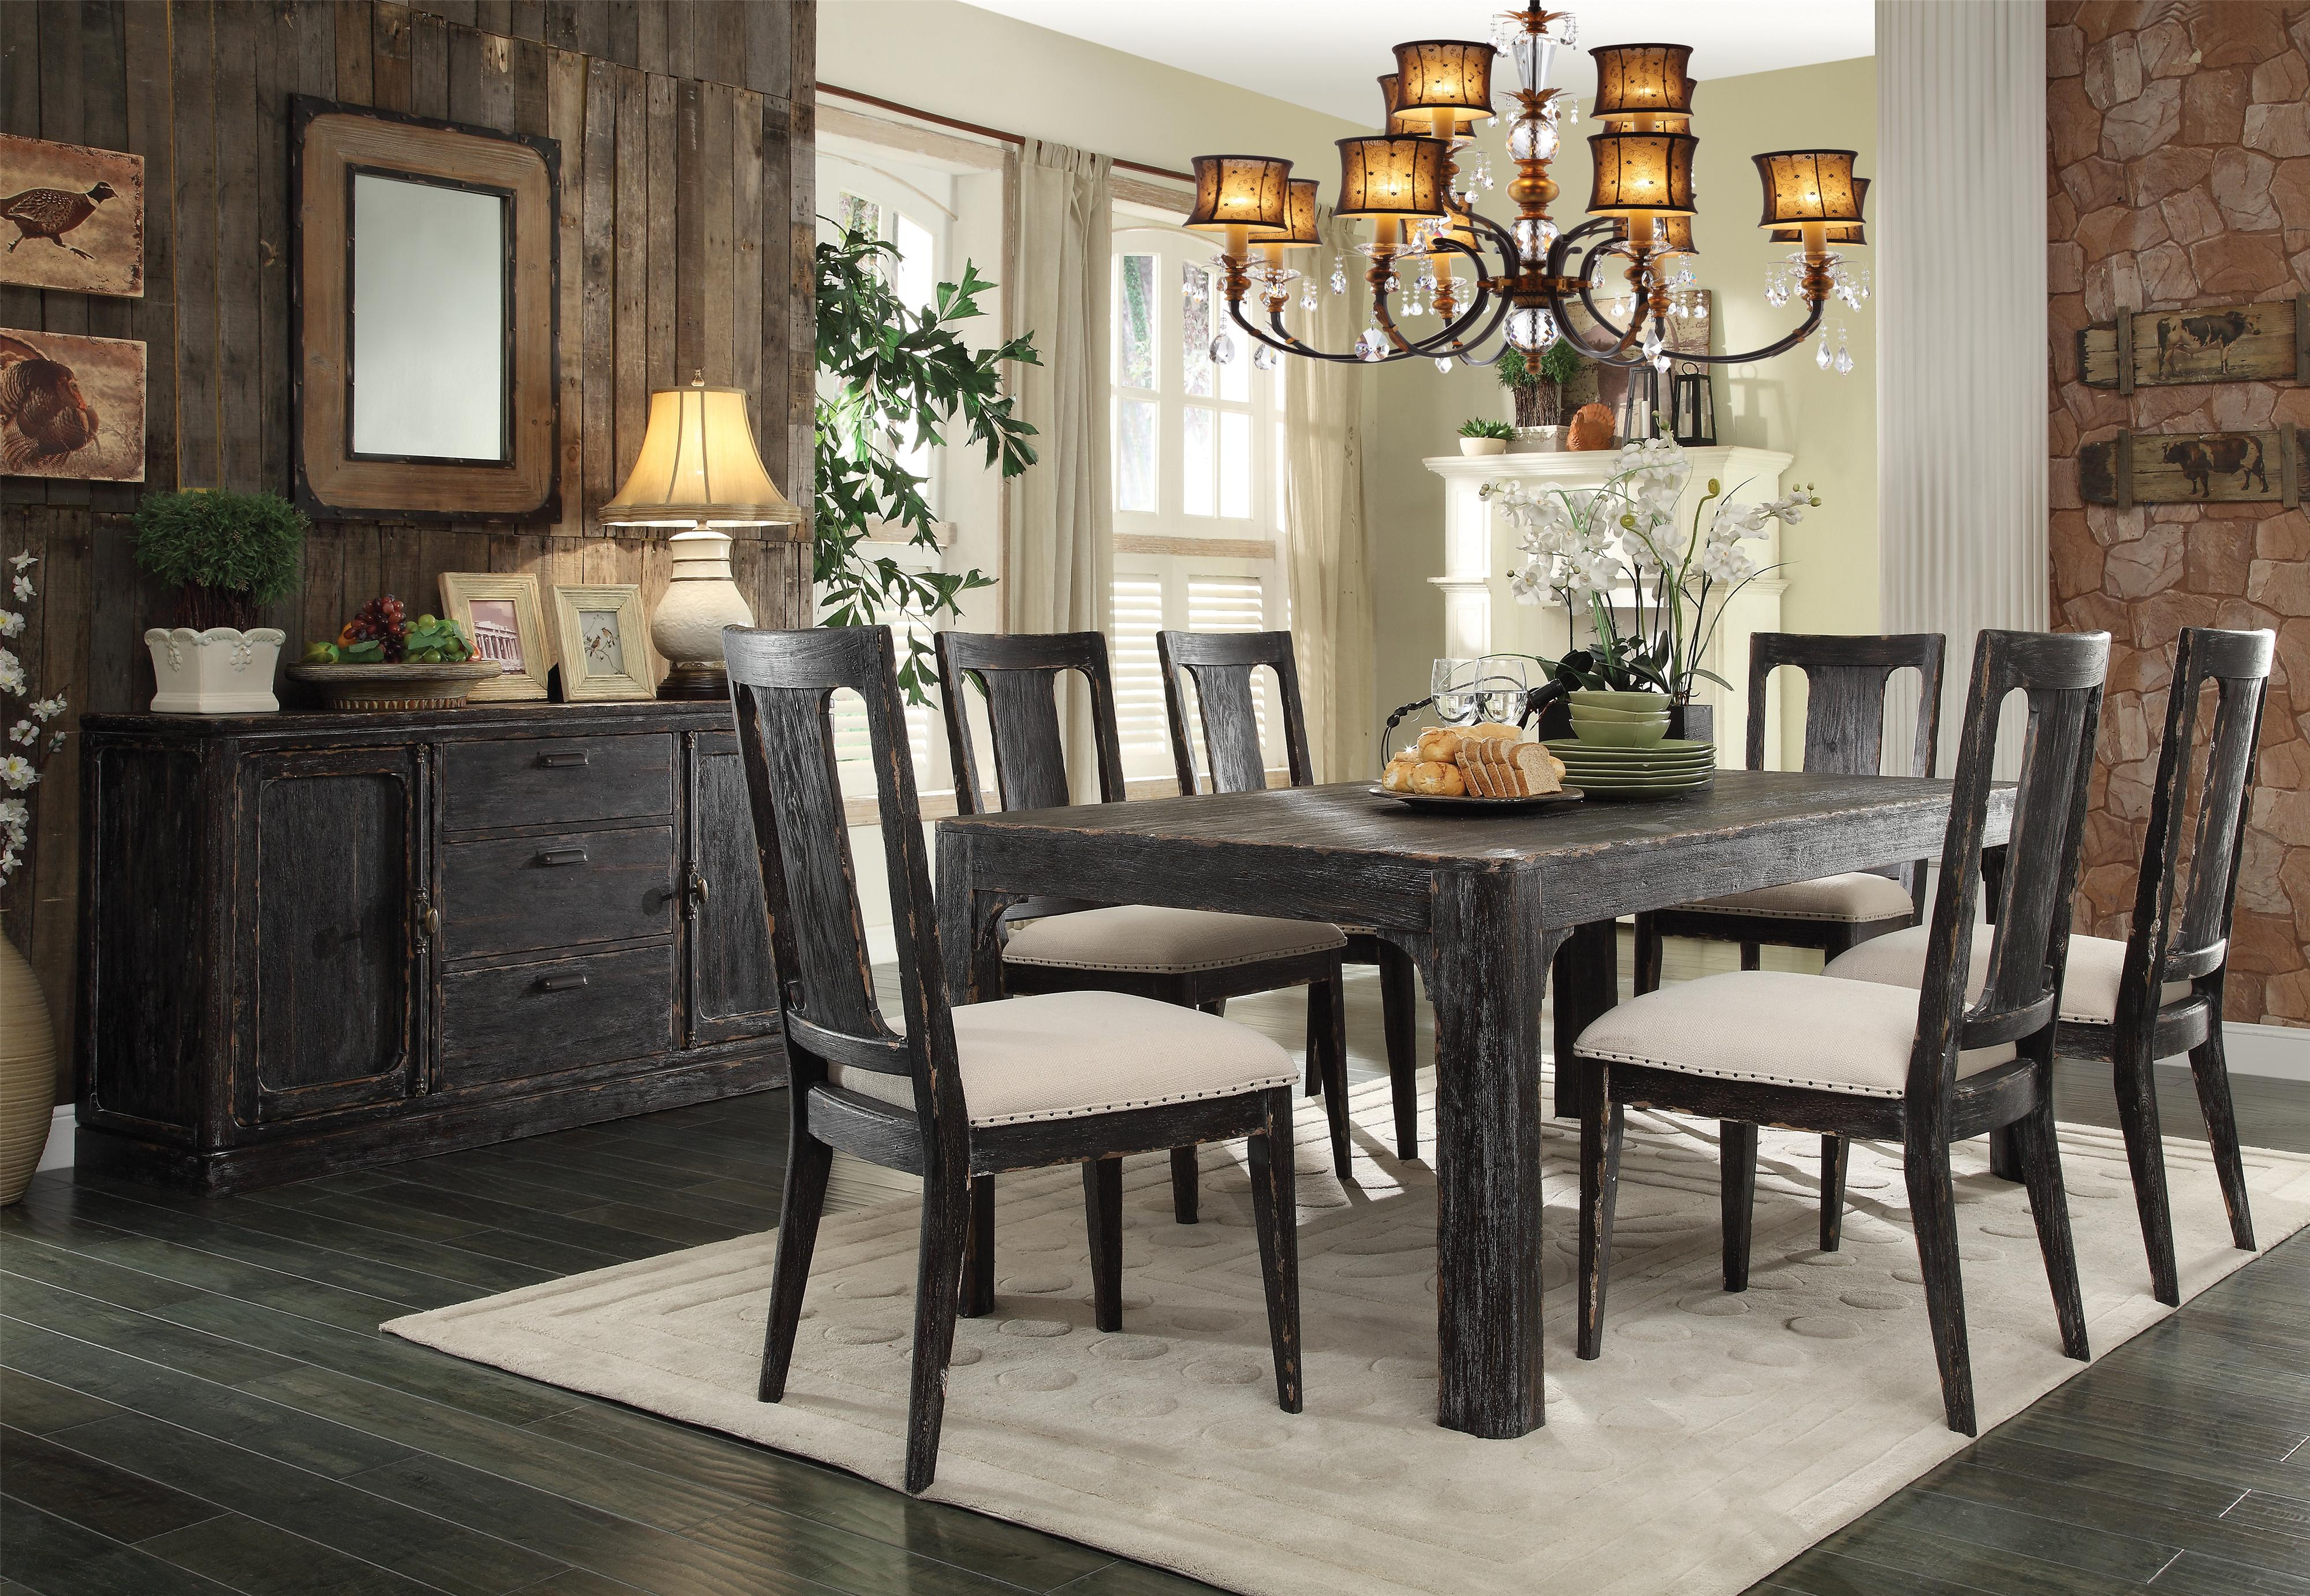 room ohio tables dining factory eastlake park chair direct dcp medina deryn homelegance northeast westlake item sets collections cleveland mentor table and